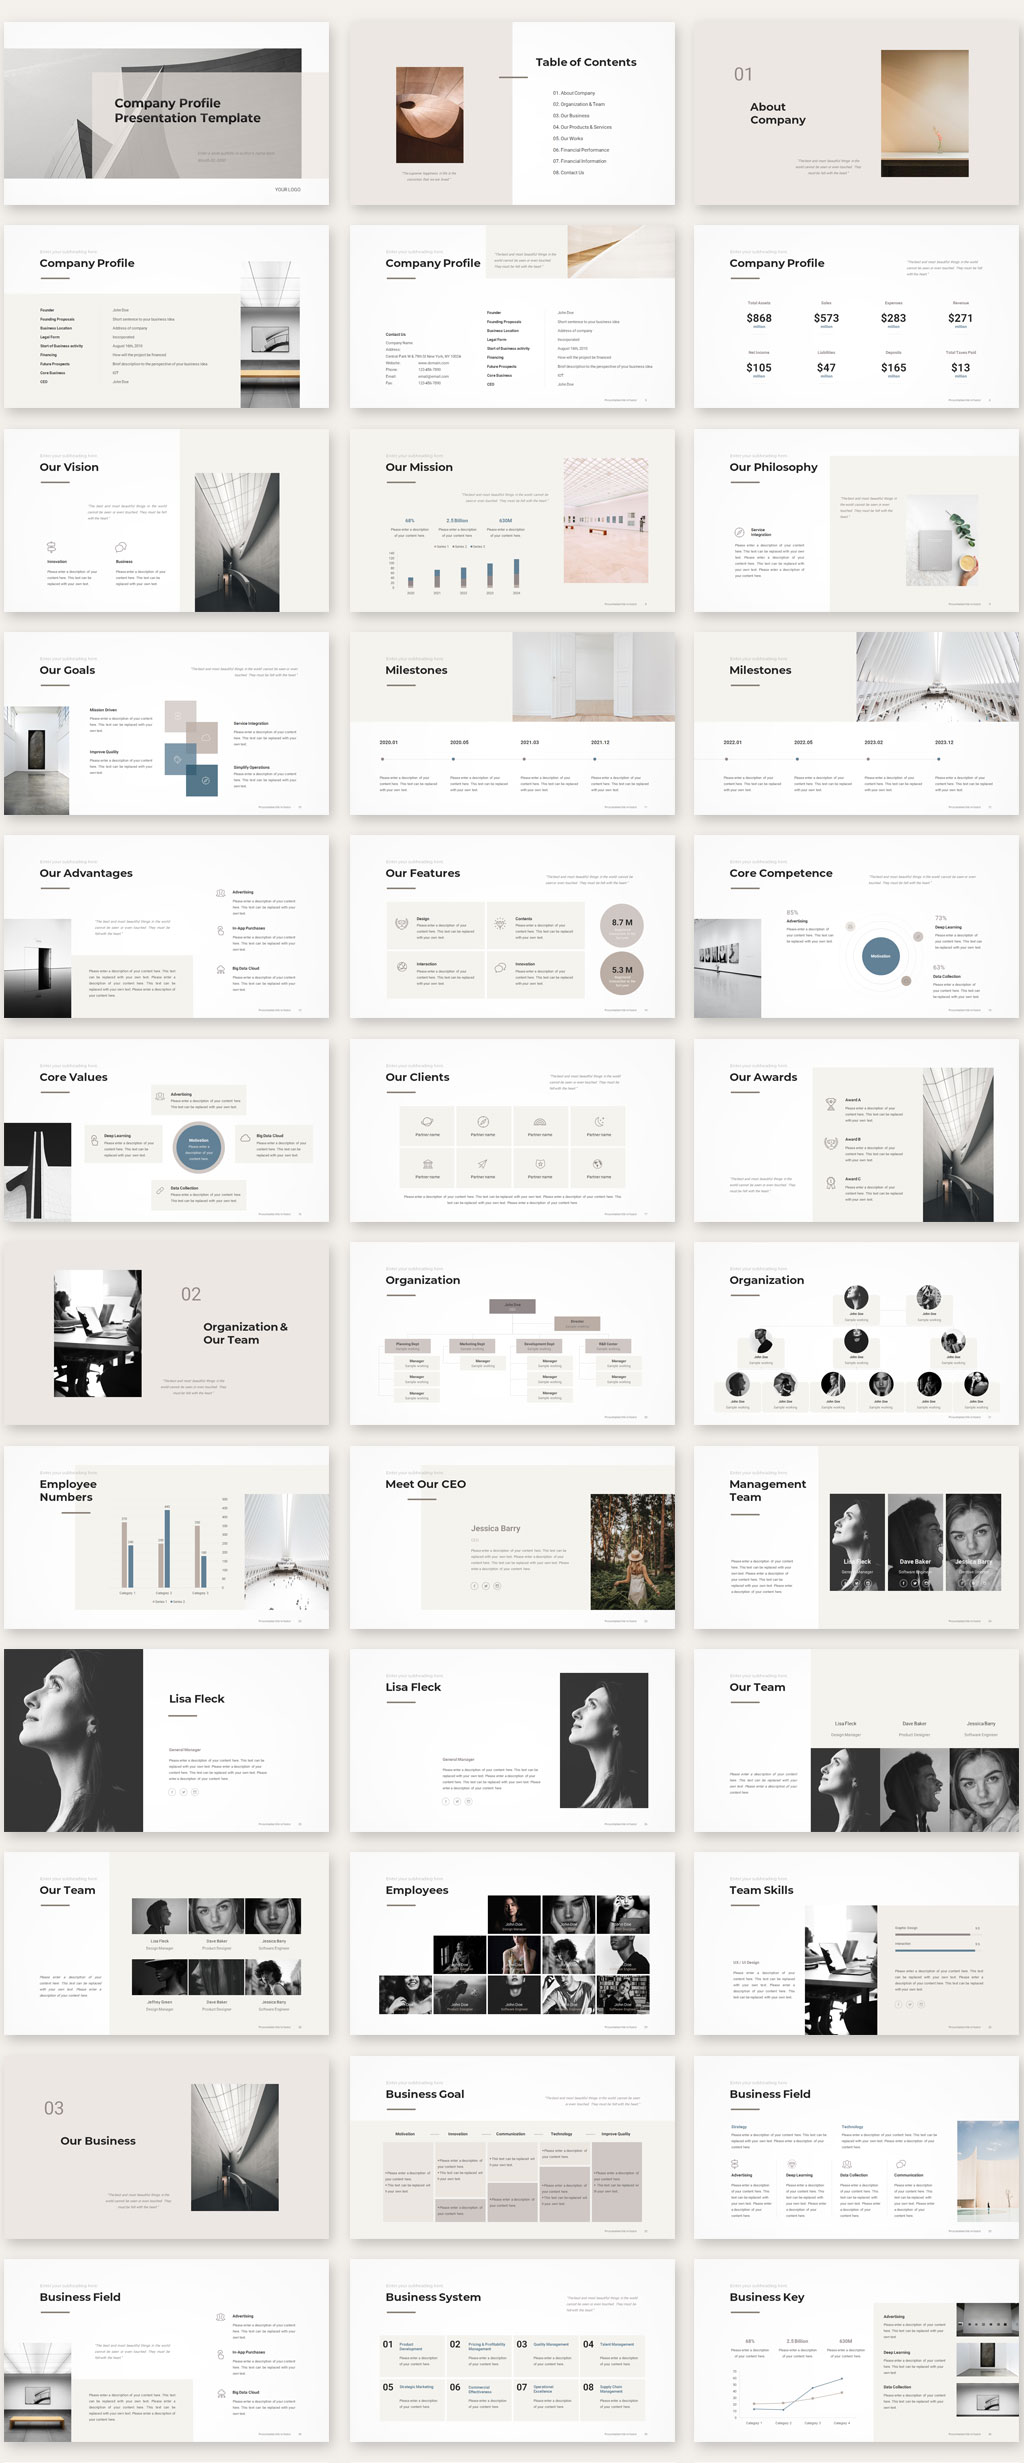 Company Profile Template 1